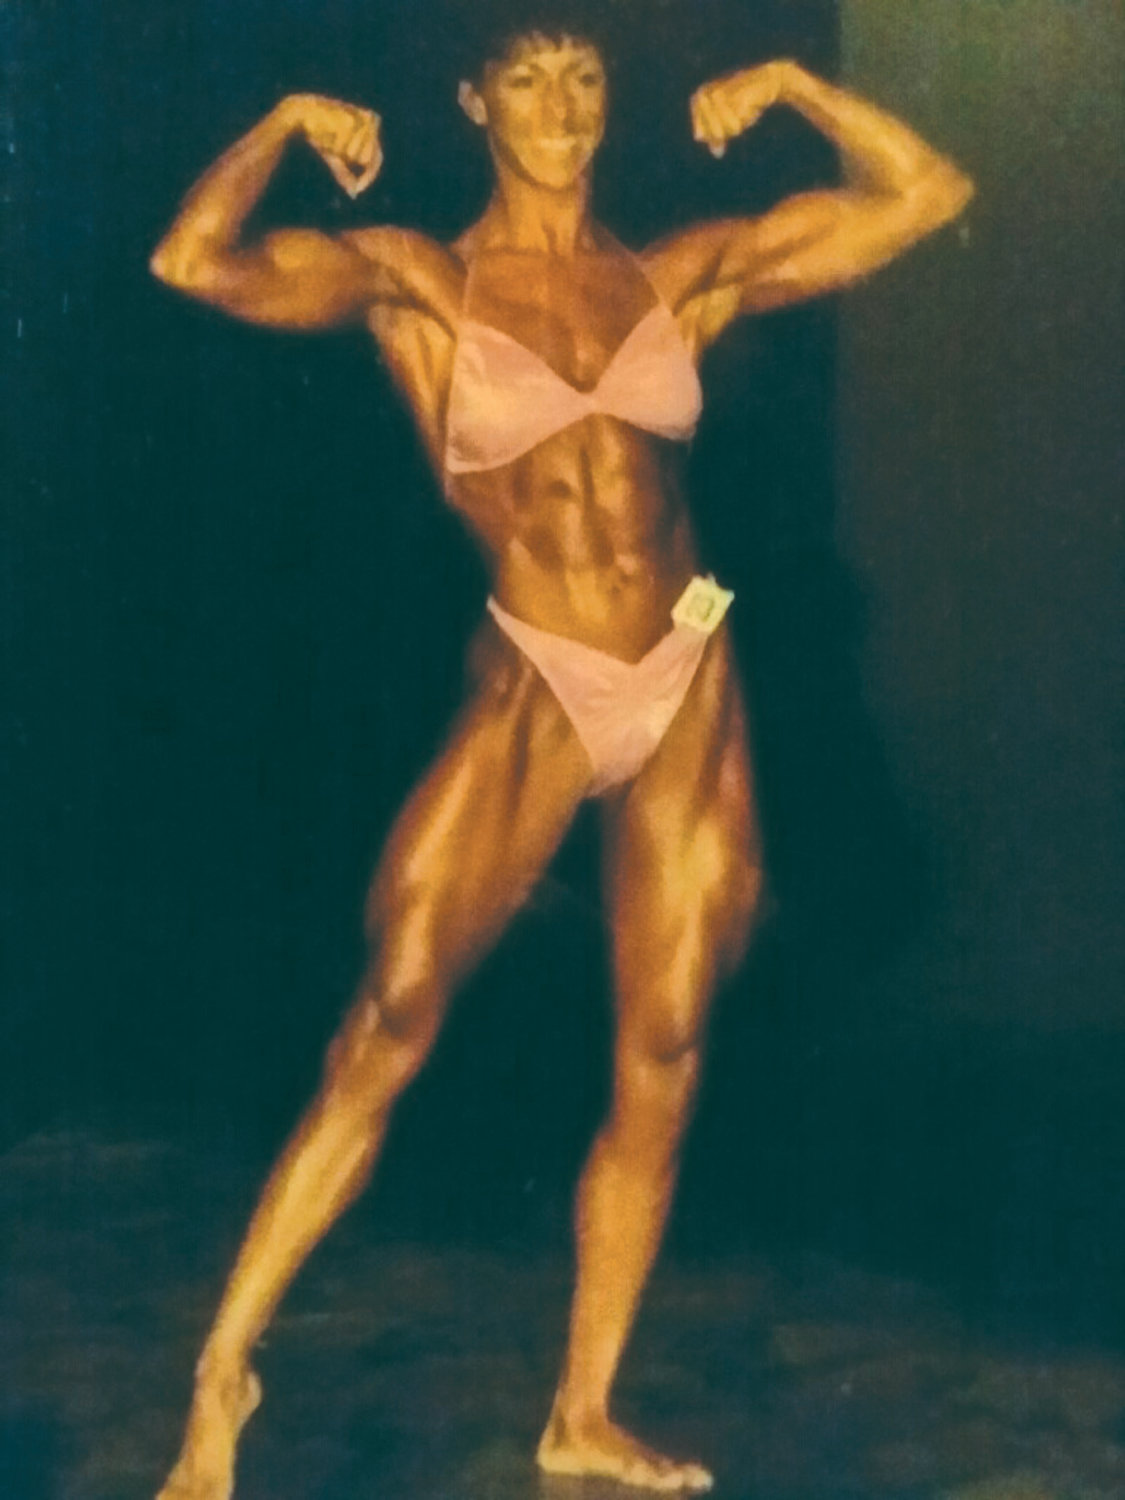 STAYING FIT: Sue Flesia competes in a body building competition.